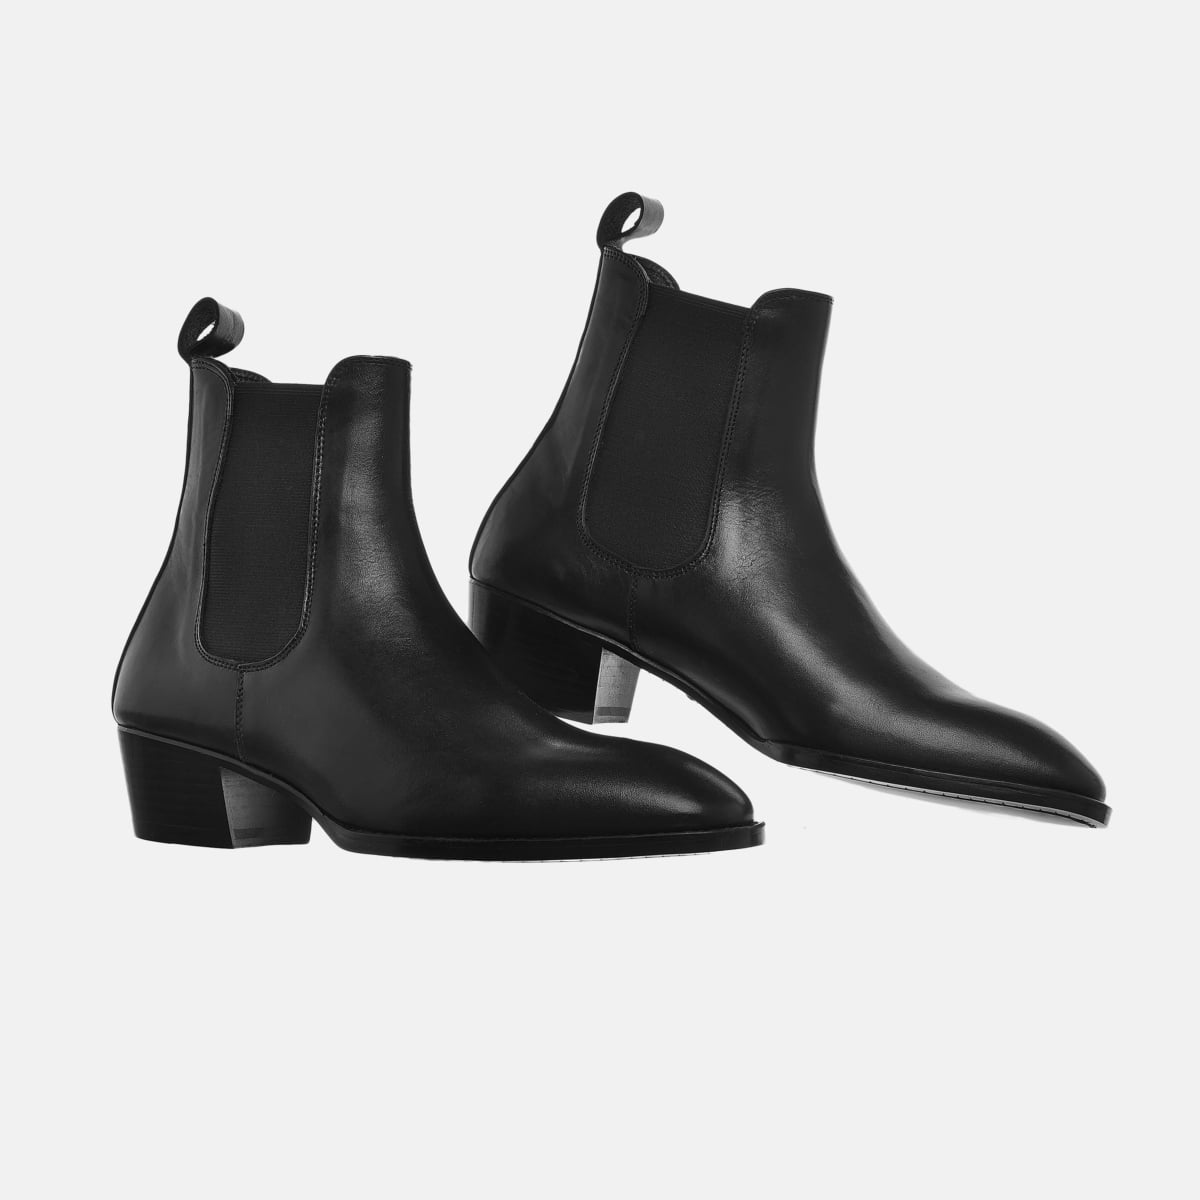 Leather Chelsea Boots In Black Leather Chelsea Boots In Black SS2020 2